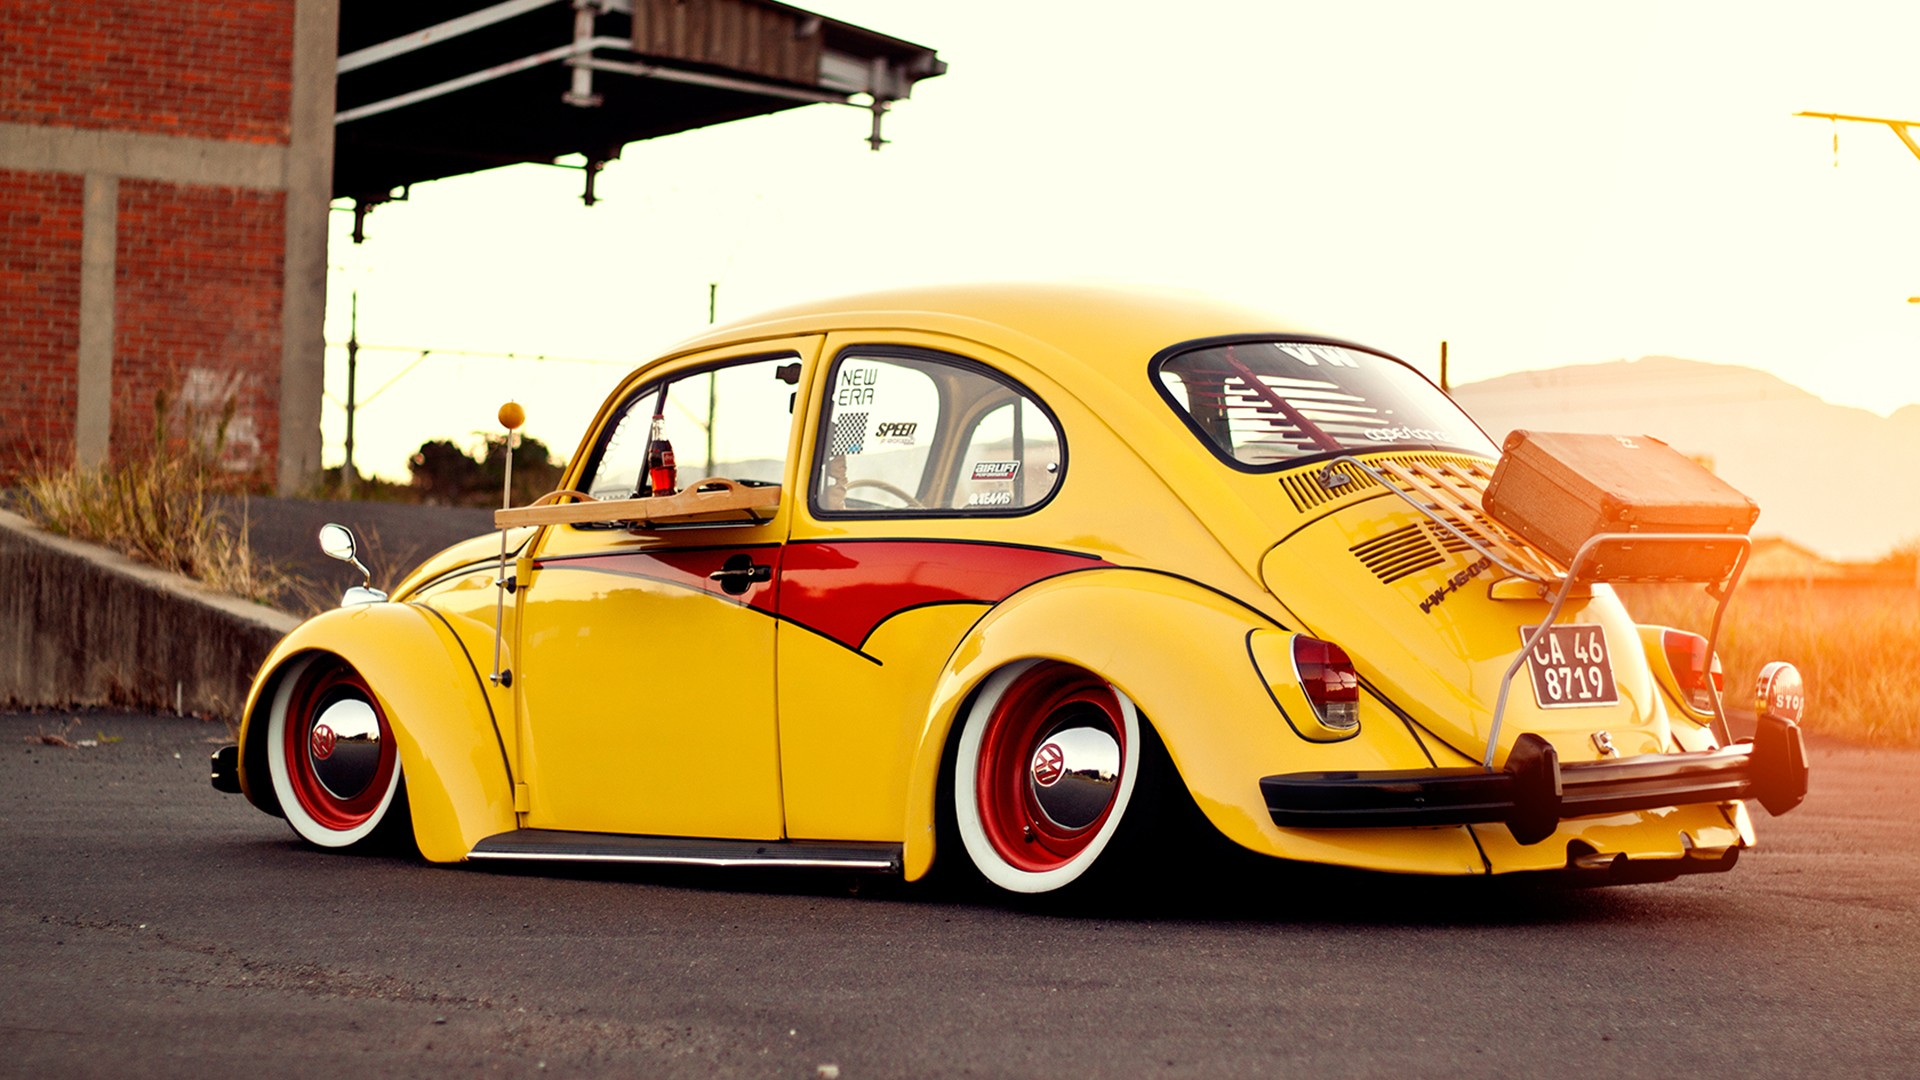 Convertible Vw Bug >> Volkswagen Beetle images Volkswagen Beetle (Volkswagen Käfer): Yellow HD wallpaper and ...